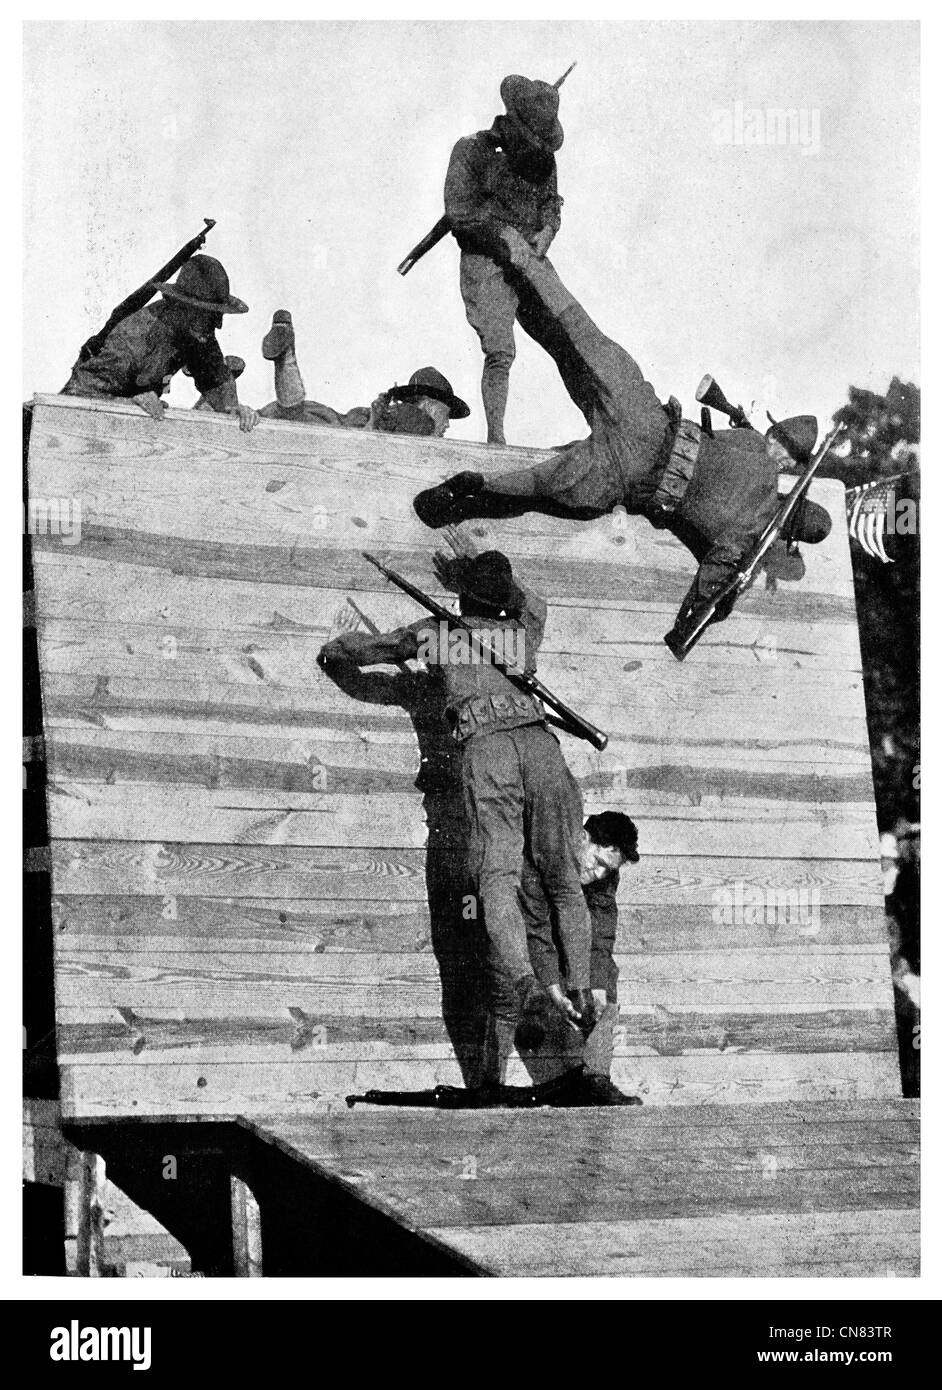 1917 Camp Wadsworth Wall scaling training military camp US Army - Stock Image